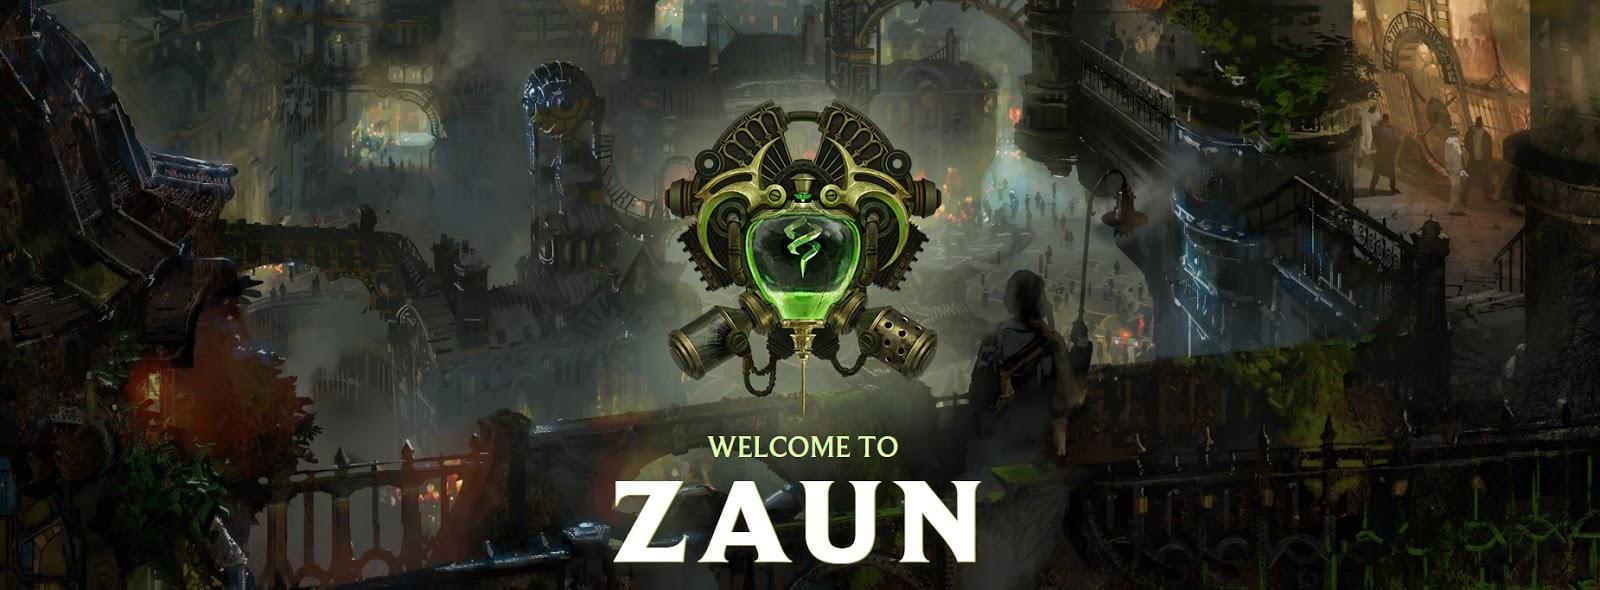 Surrender at 20: [UPDATED] Welcome to Zaun